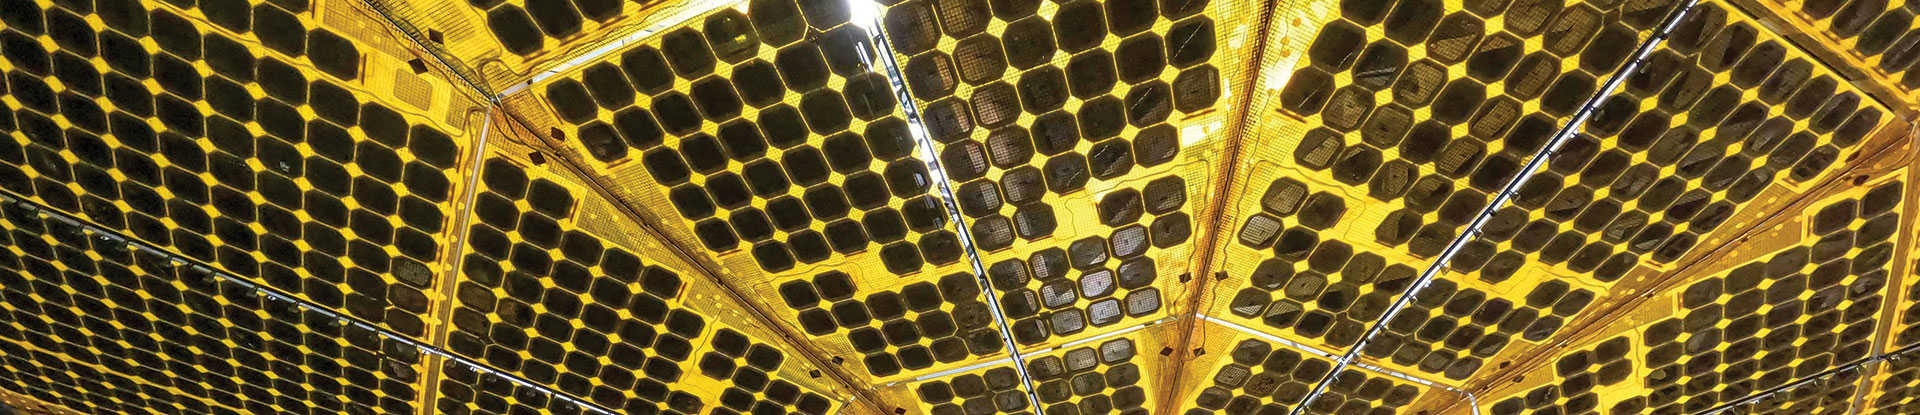 The underside of one of Lucy spacecraft's massive solar arrays in a thermal vacuum chamber